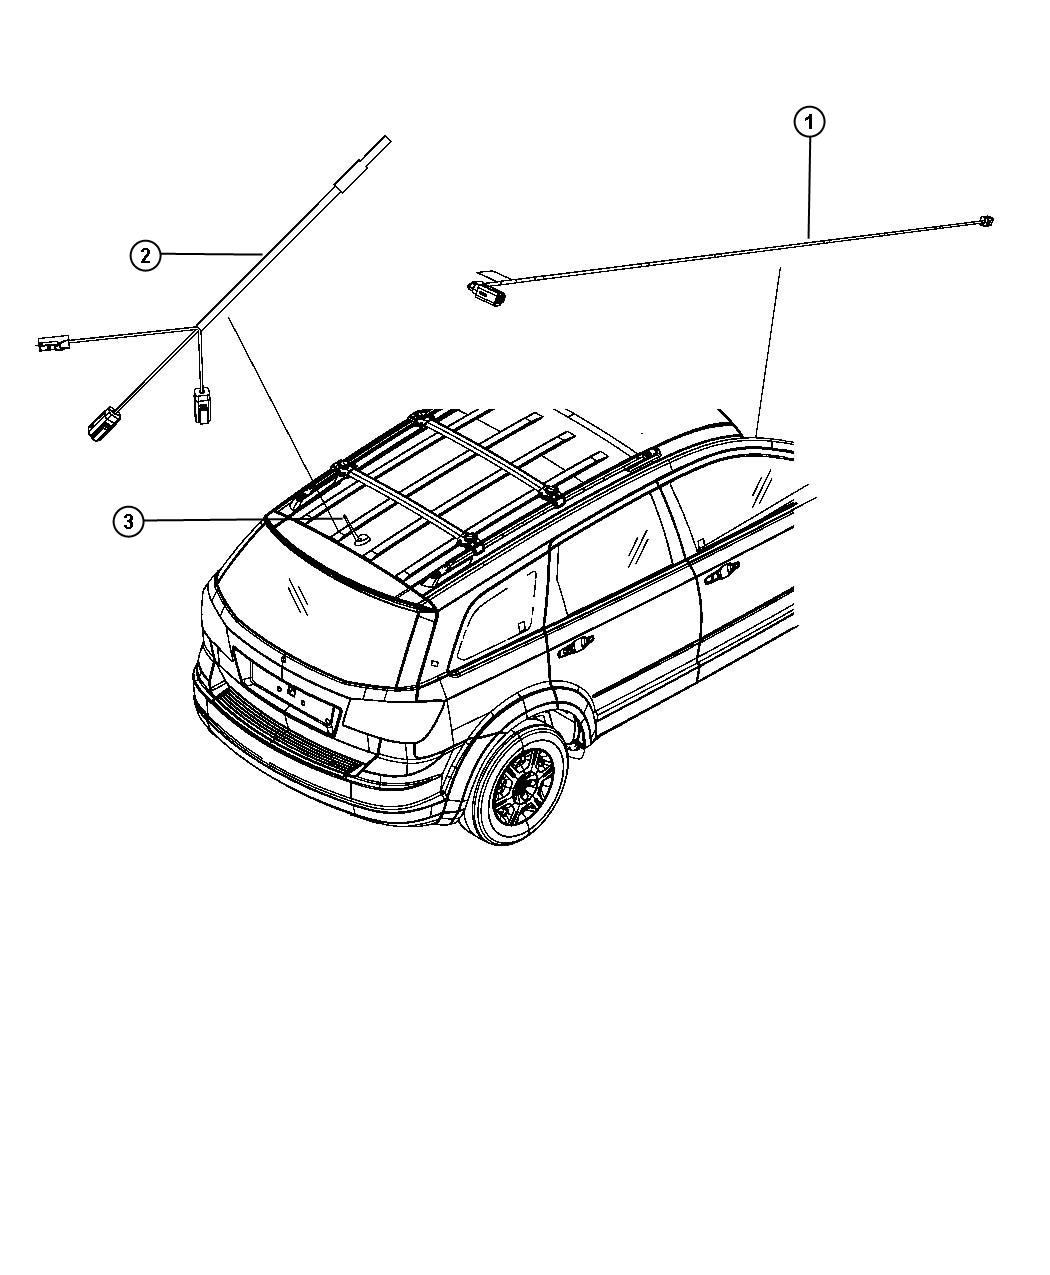 Dodge Journey Antenna Used For Base Cable And Bracket